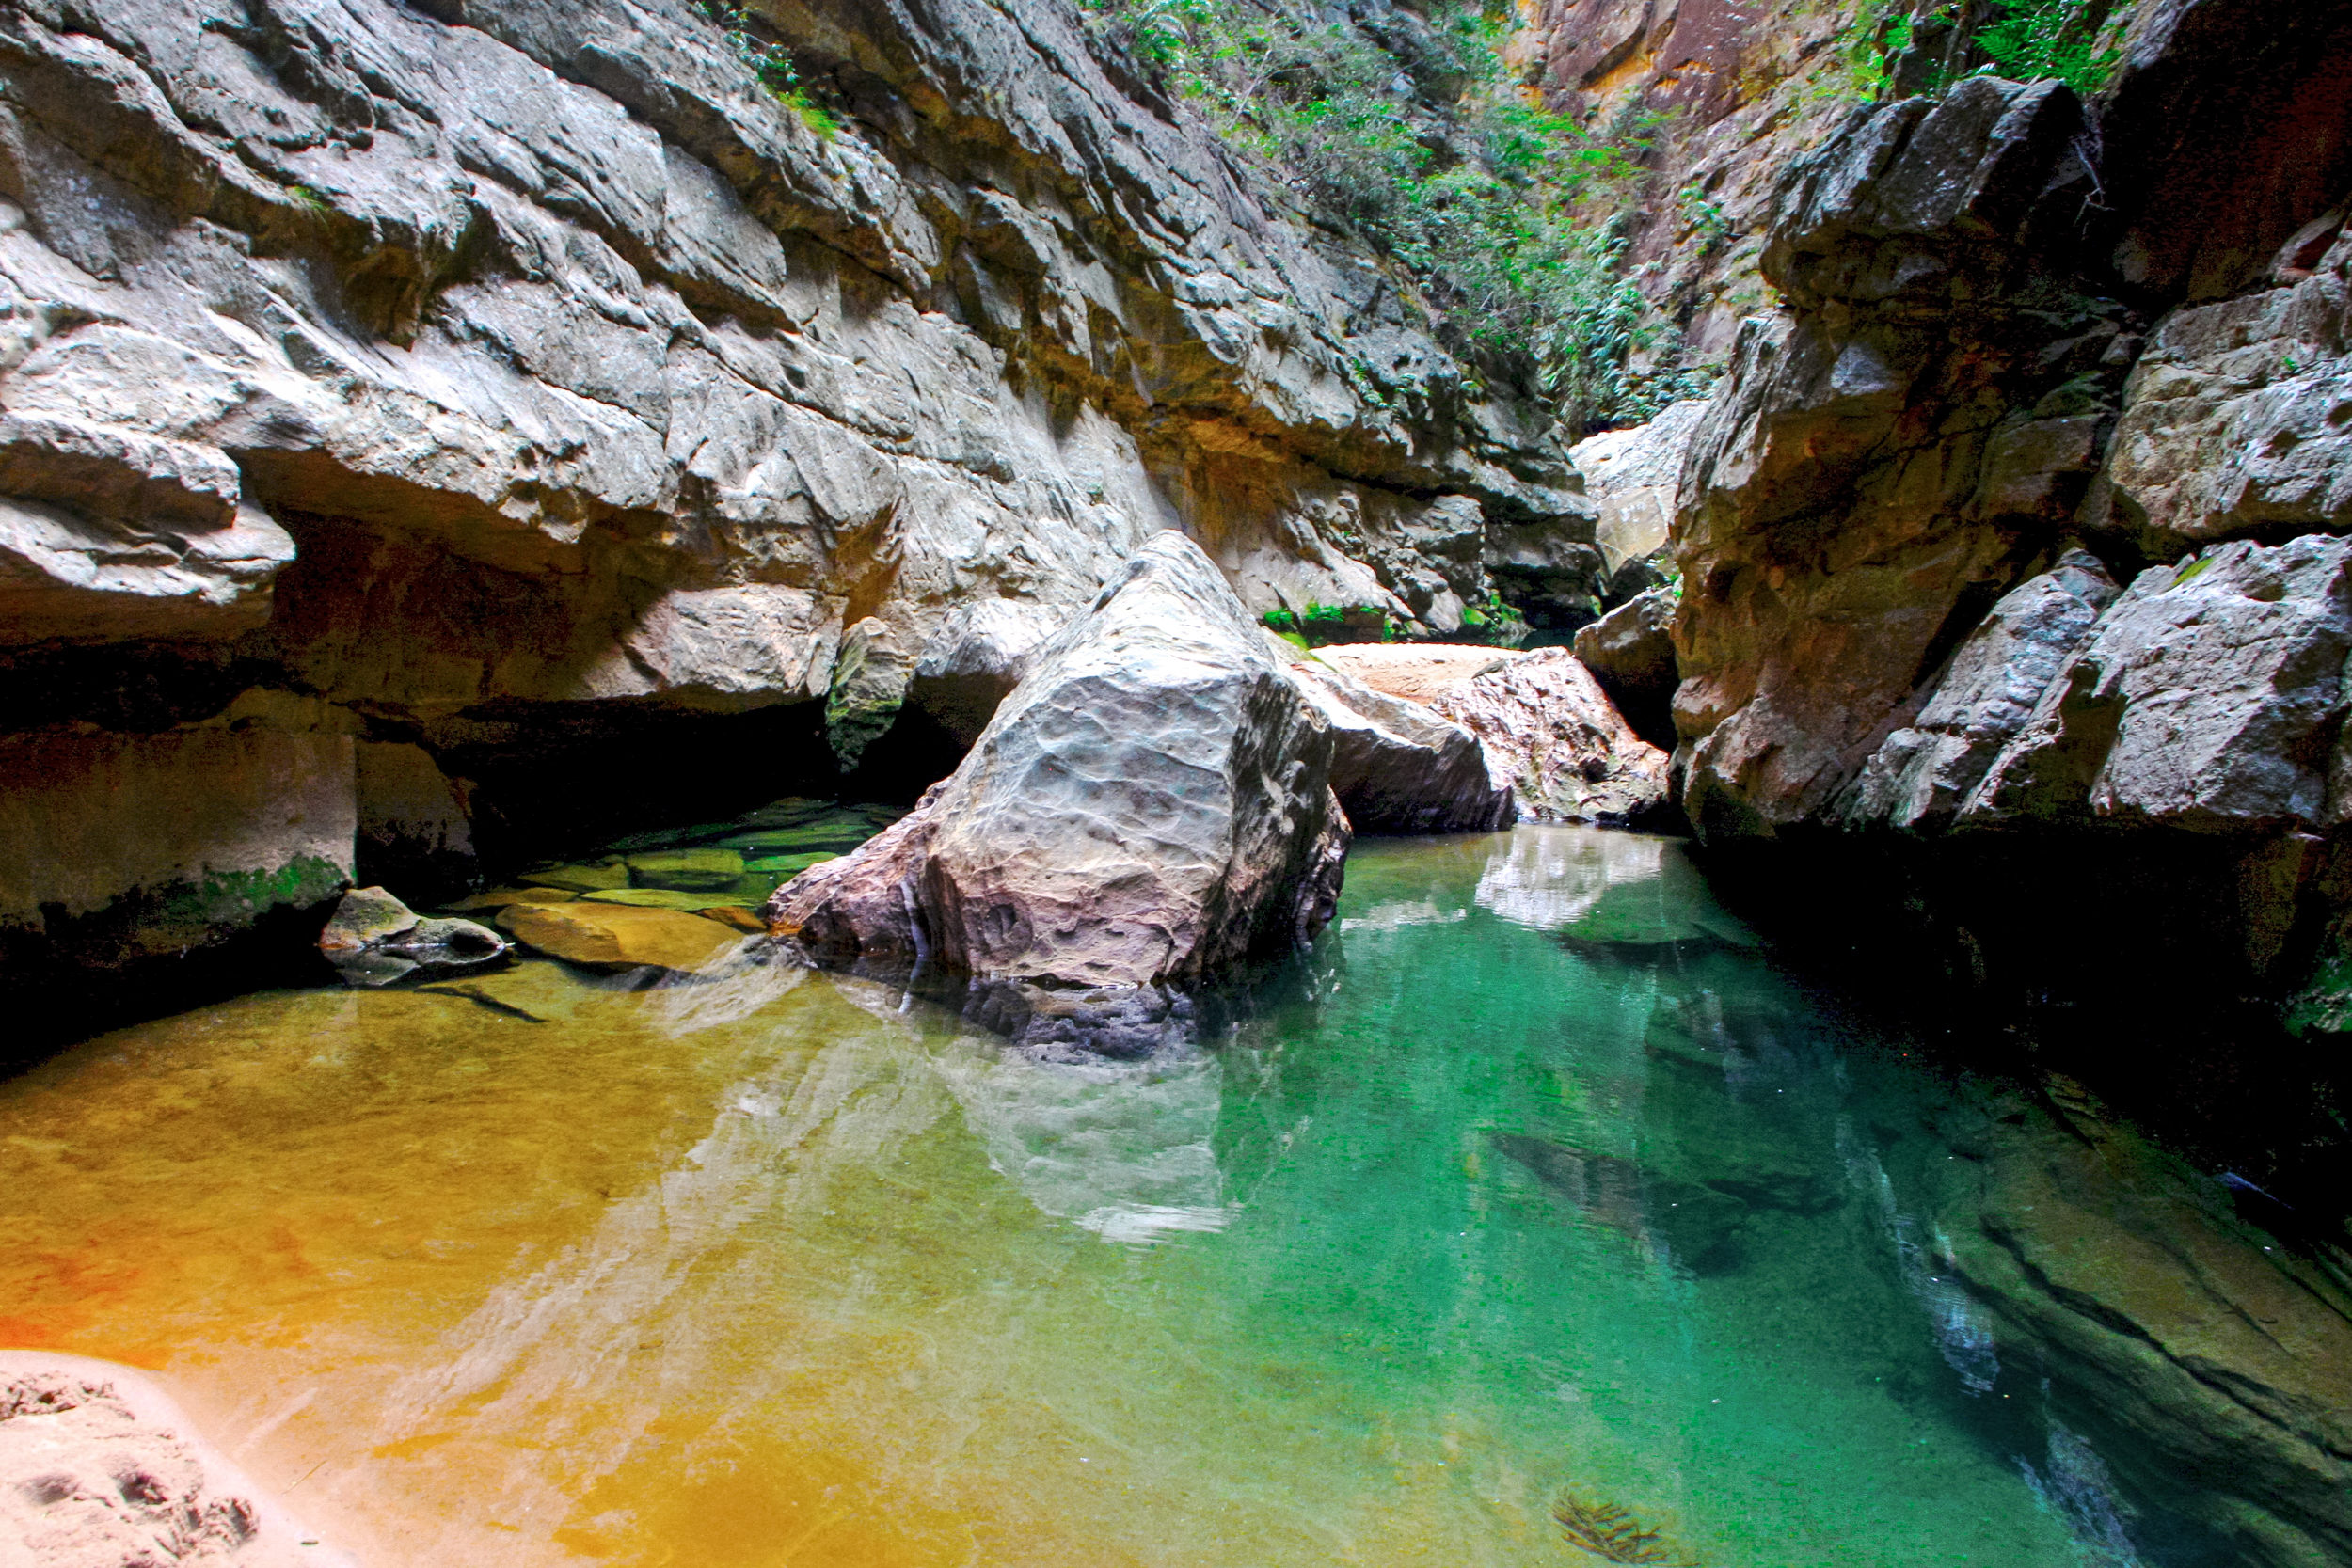 Entering Isalo, there are insanely colored pools hidden between the narrow canyon walls.